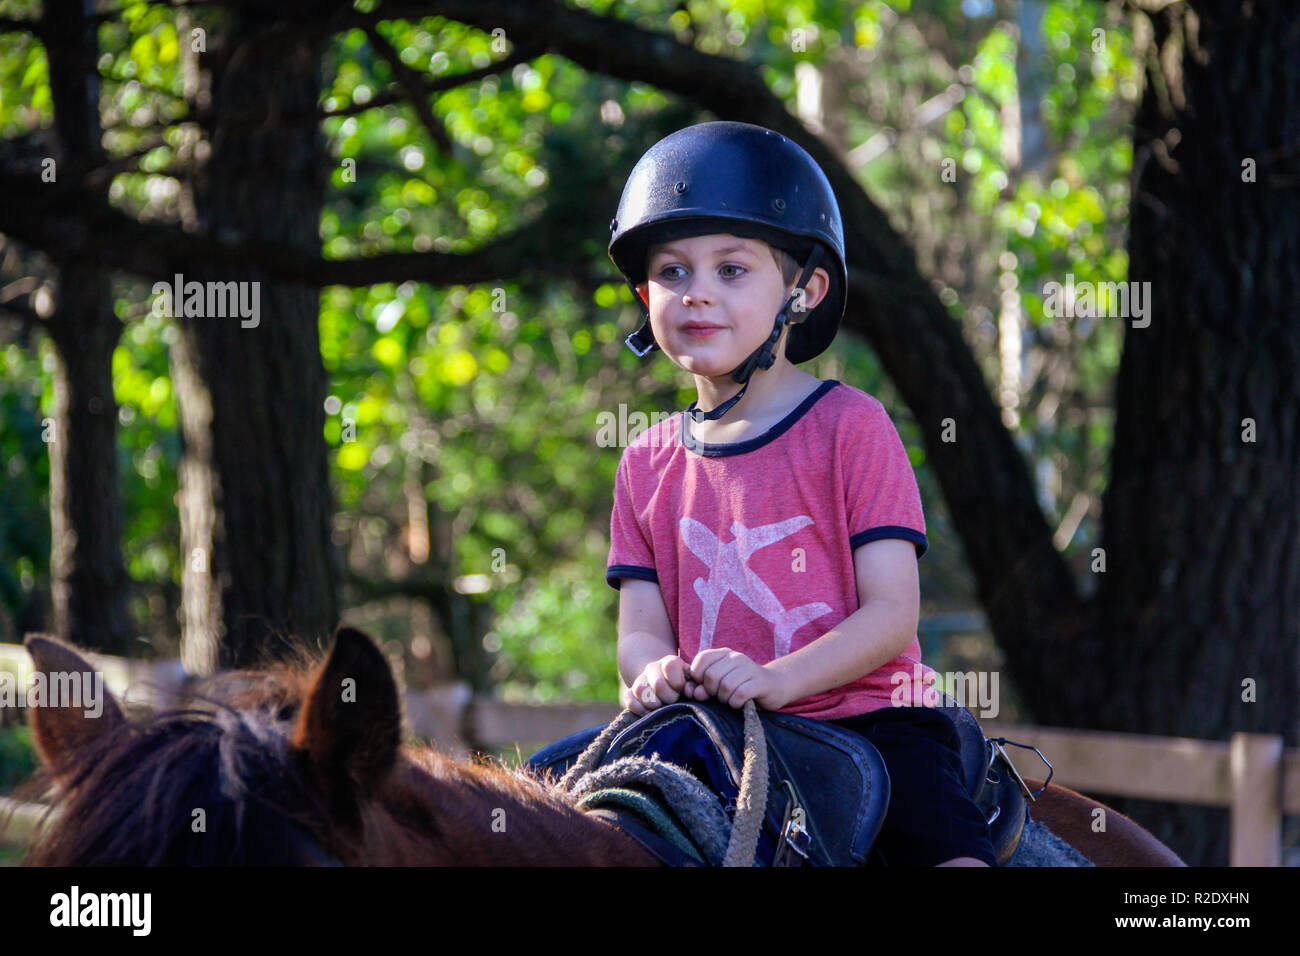 Authentic close up of young caucasian boy, age 8 – 10, having fun, unplugged, riding a horse outside with sunlight filtering through trees in paddock - Stock Image